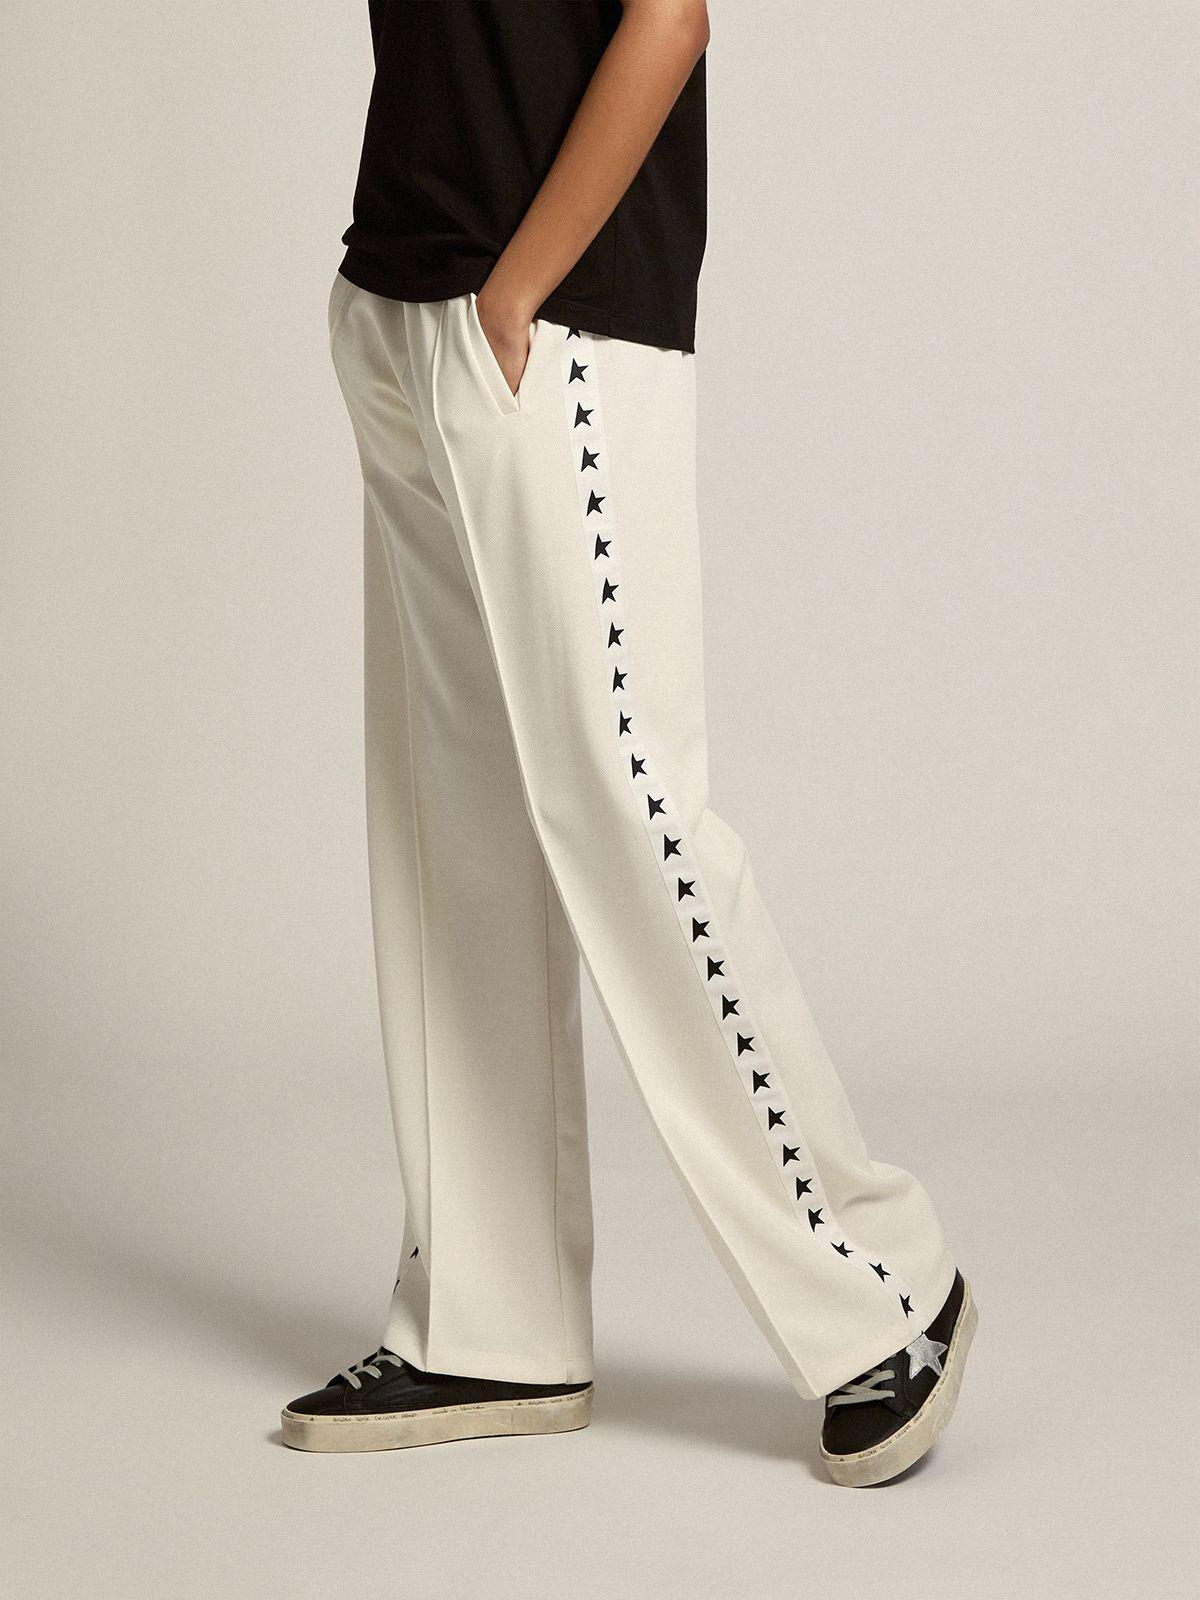 Papyrus white Dorotea Star Collection jogging pants with black stars on the sides